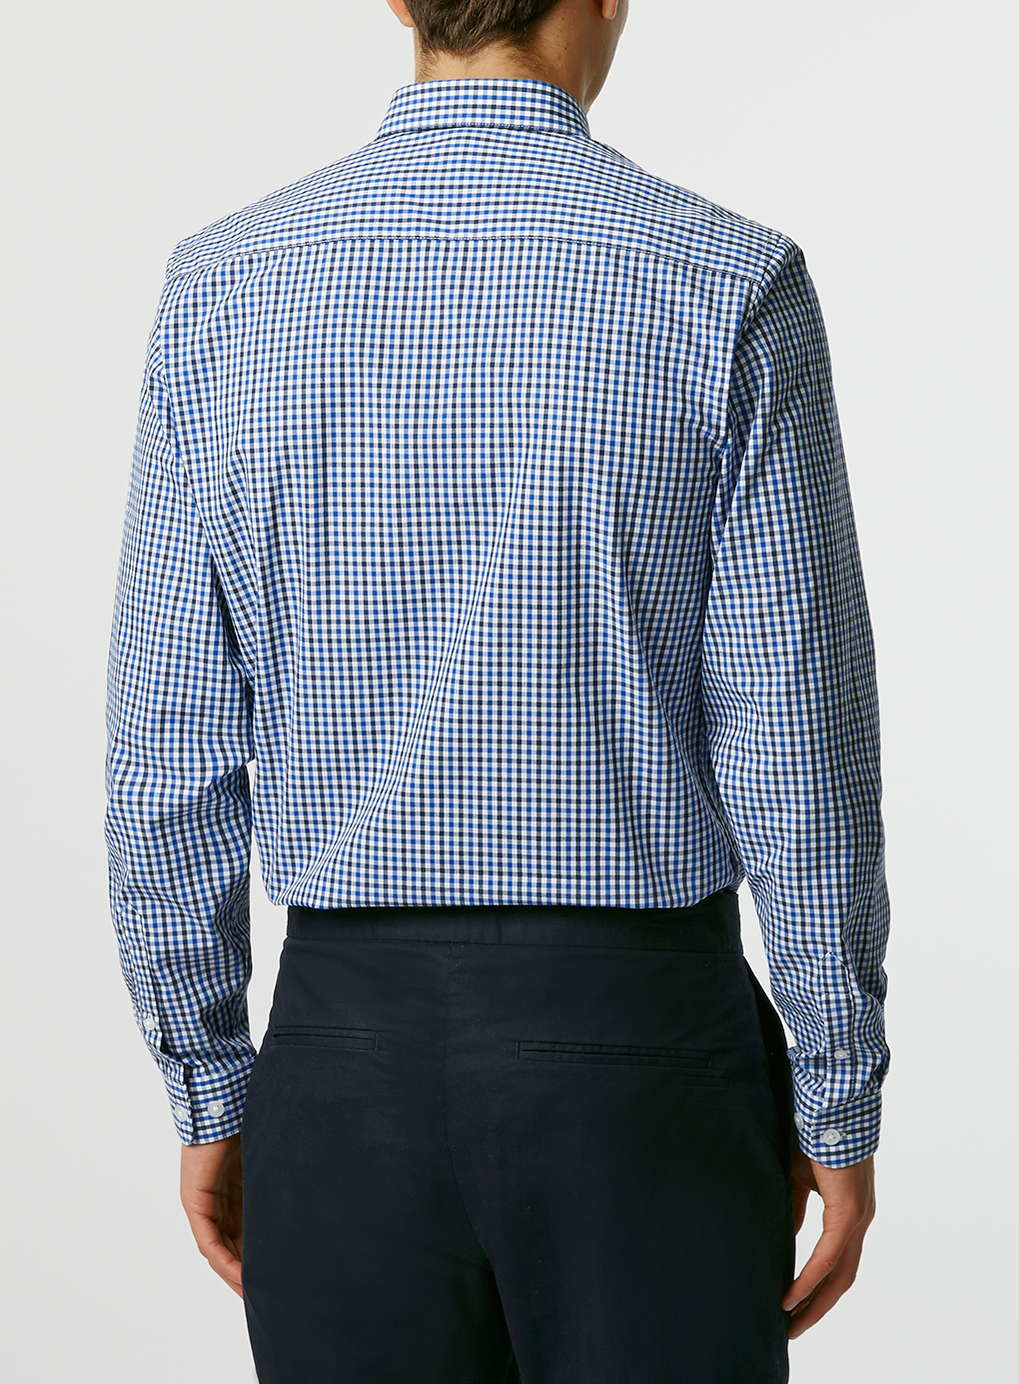 Topman Navy White Gingham Button Down Long Sleeve Smart